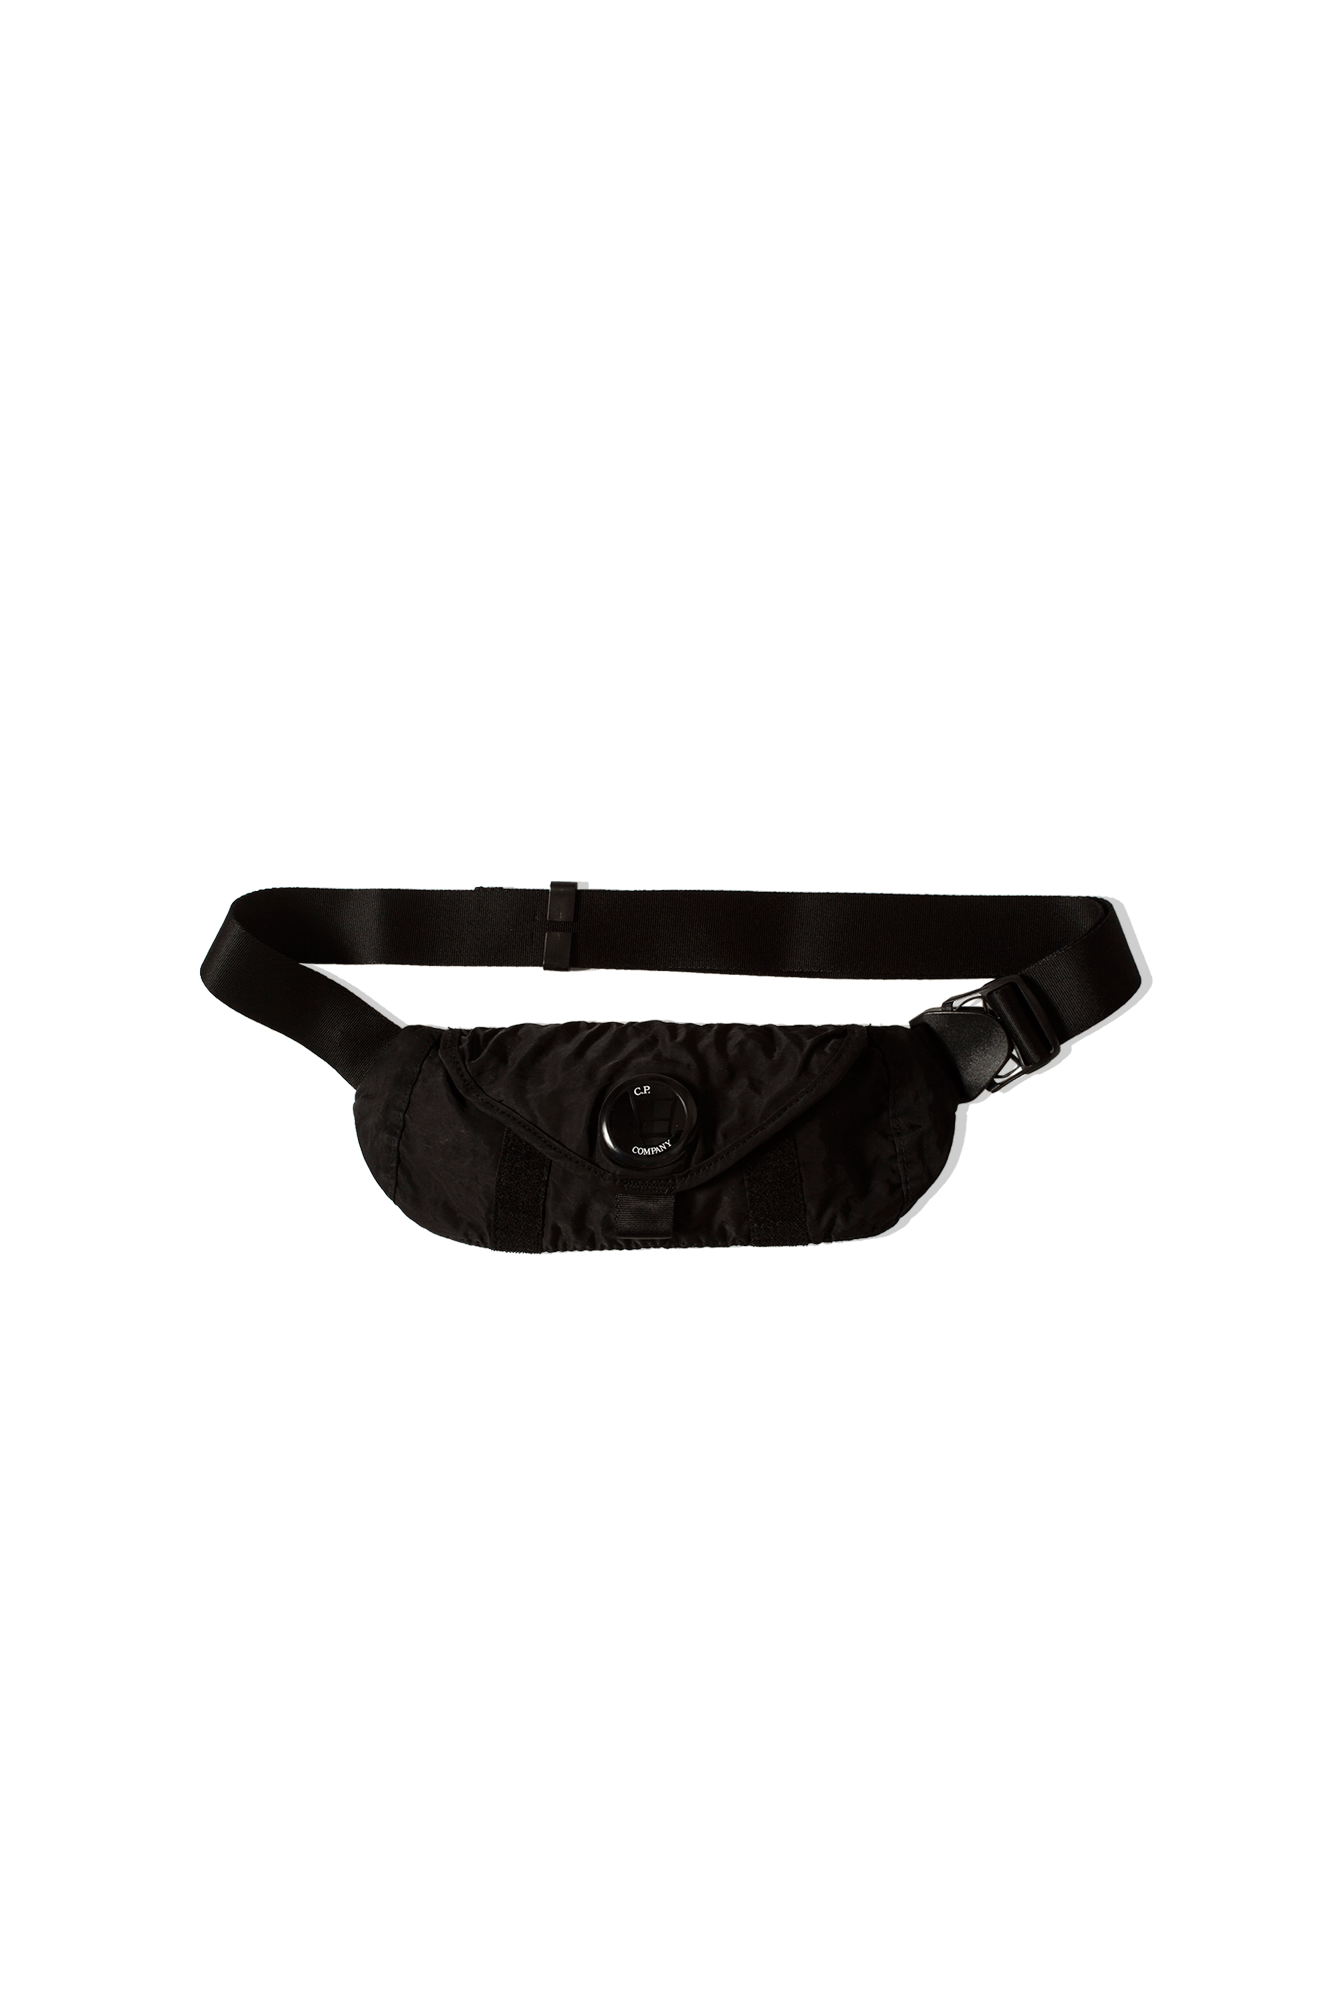 Mini Waist Bag Black